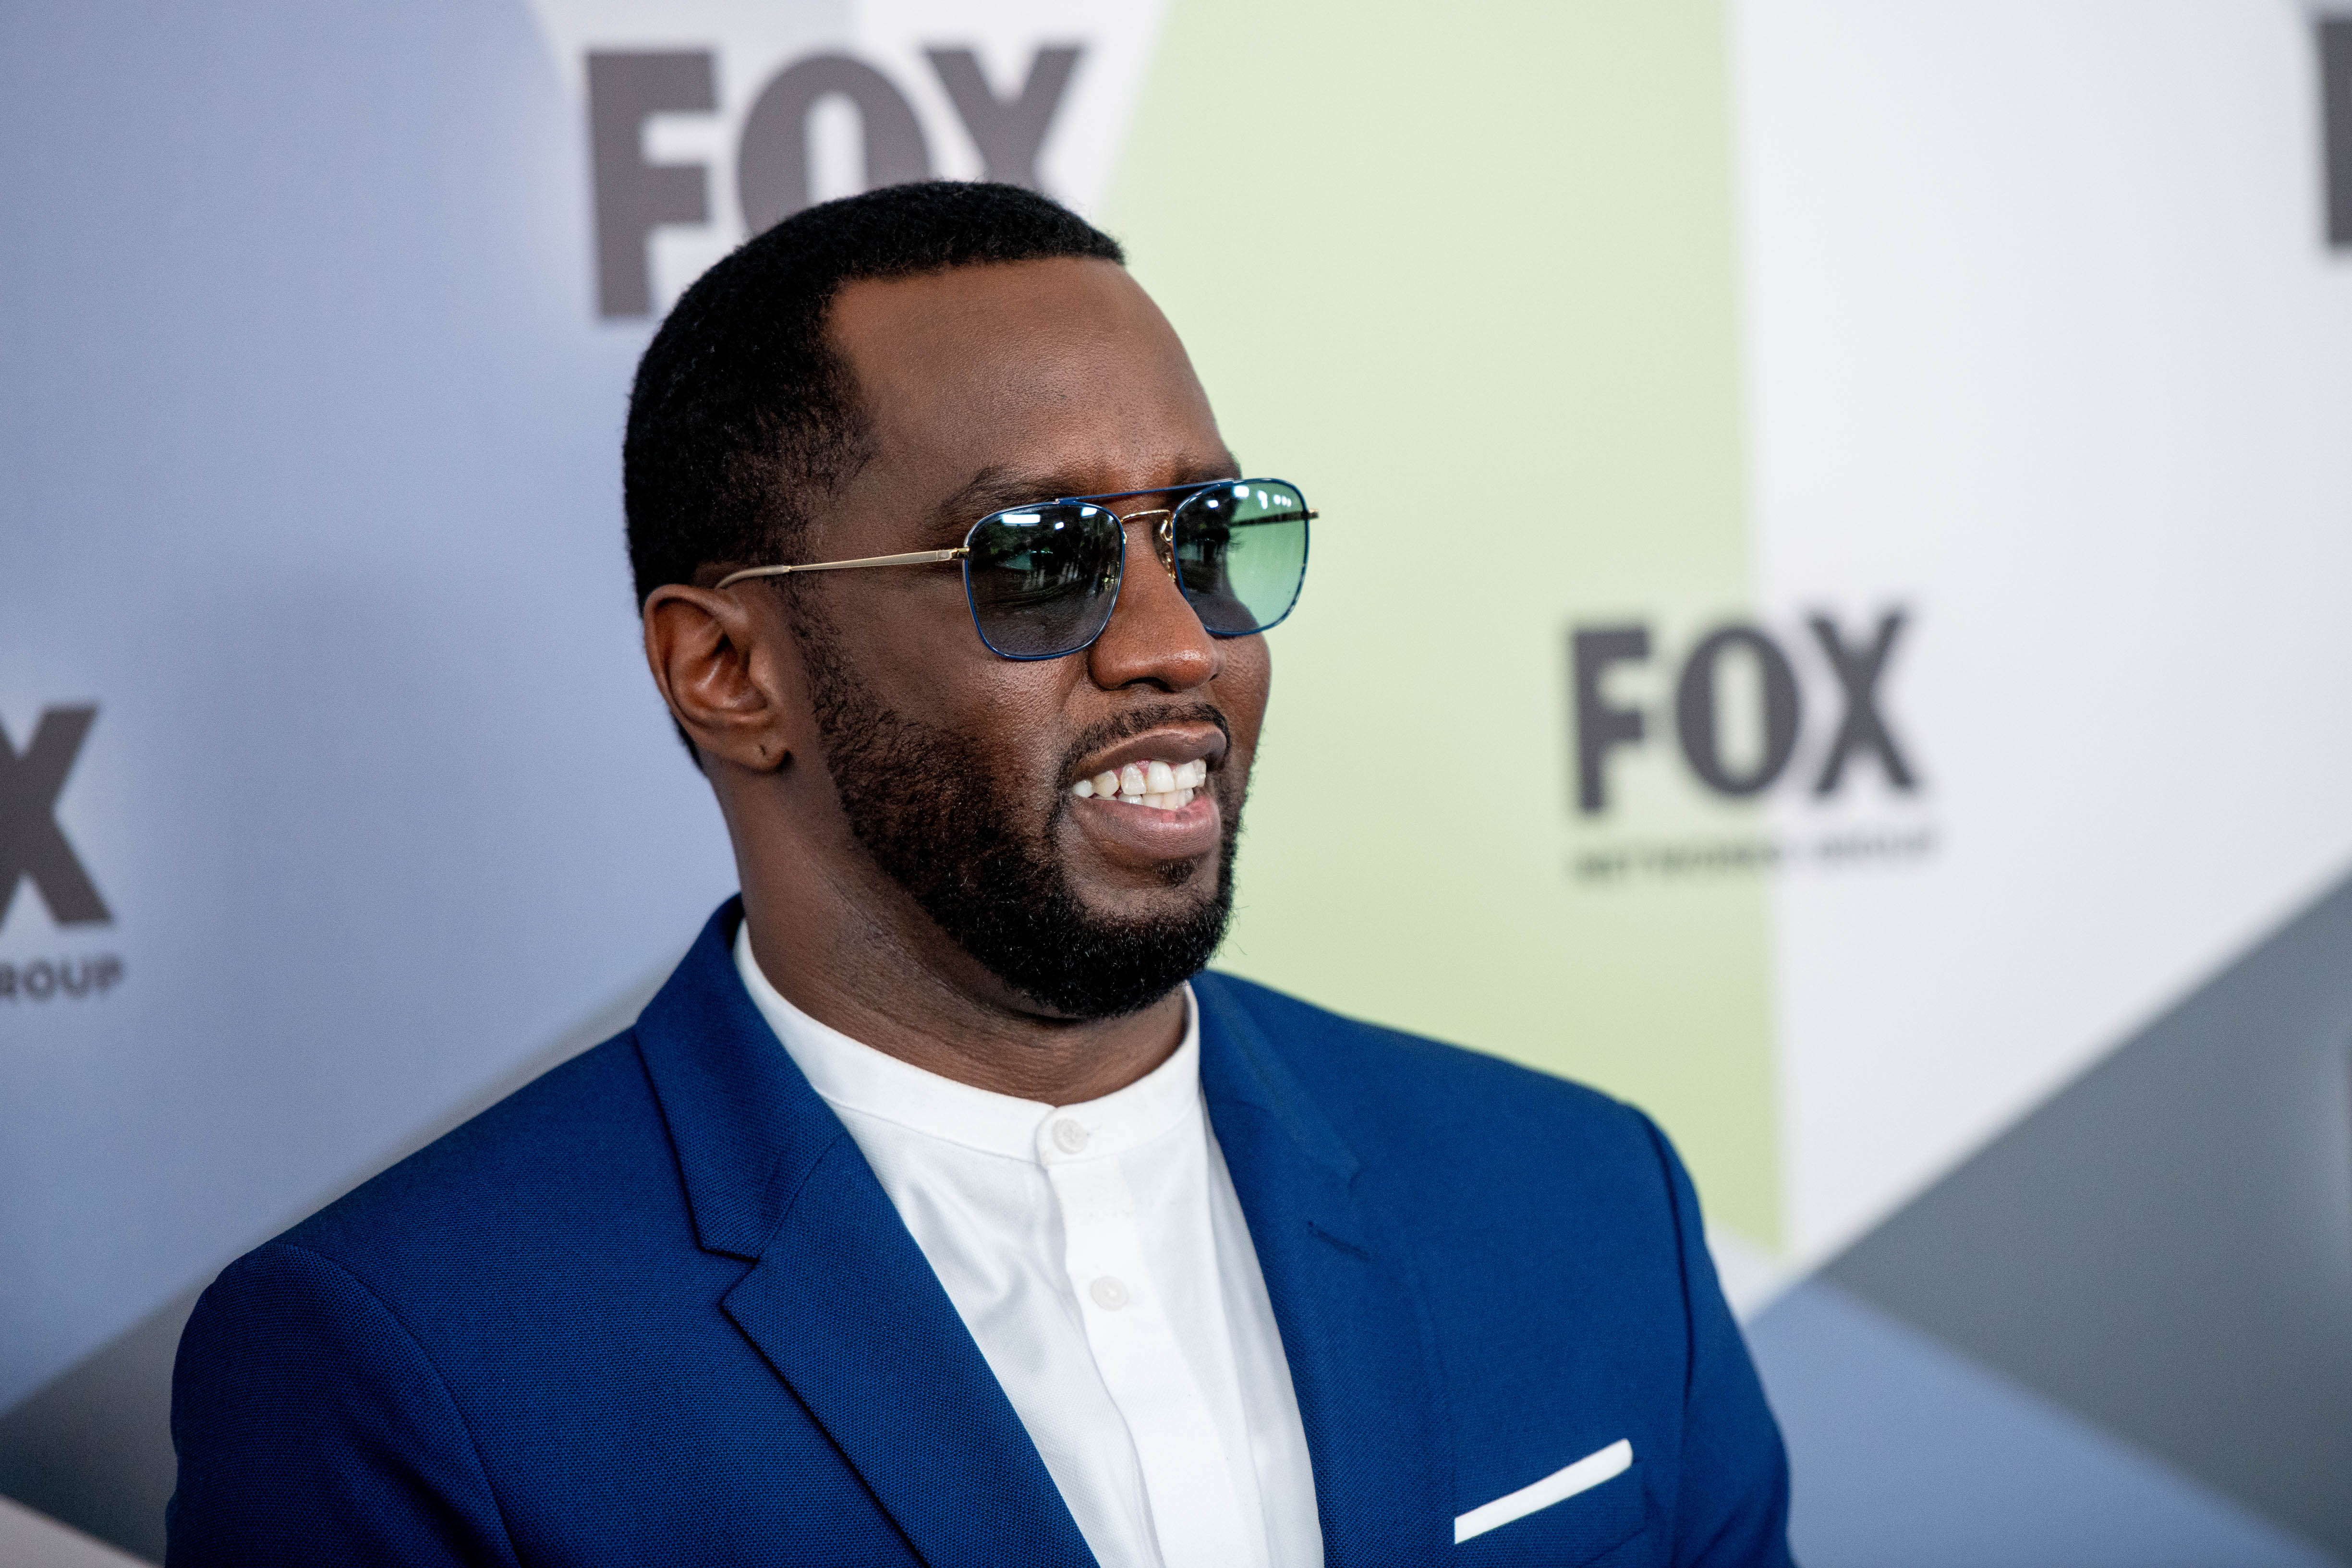 Sean 'Diddy' Combs at the 2018 Fox Network Upfront at Wollman Rink, Central Park on May 14, 2018 in New York City. | Photo: Getty Images